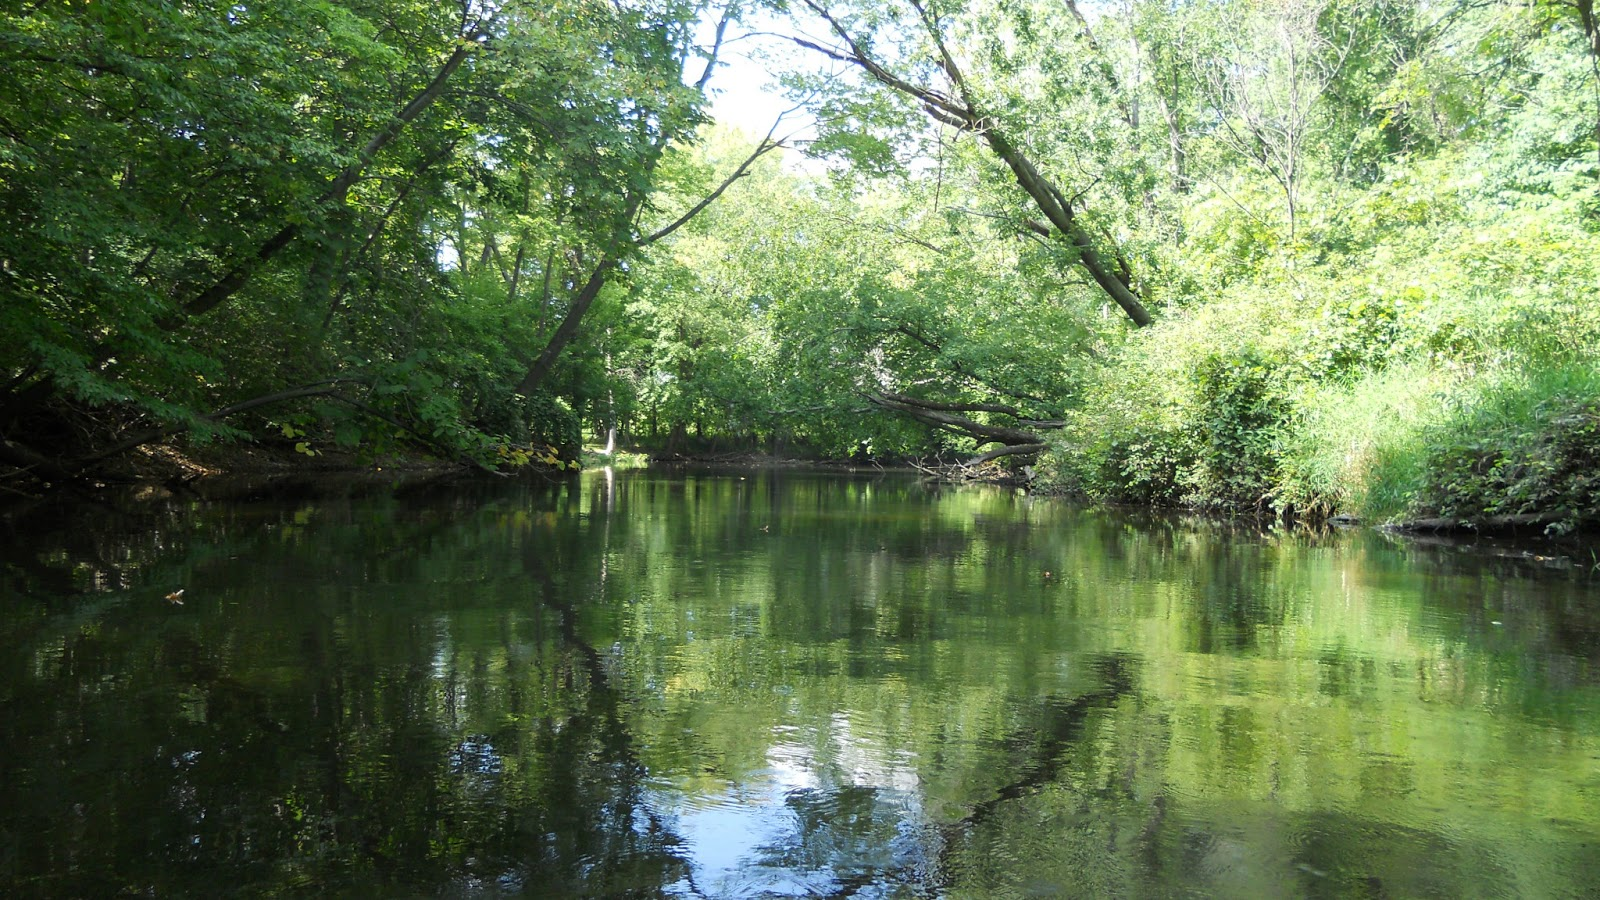 Canoeing the Thornapple River: One of Michigan's Most